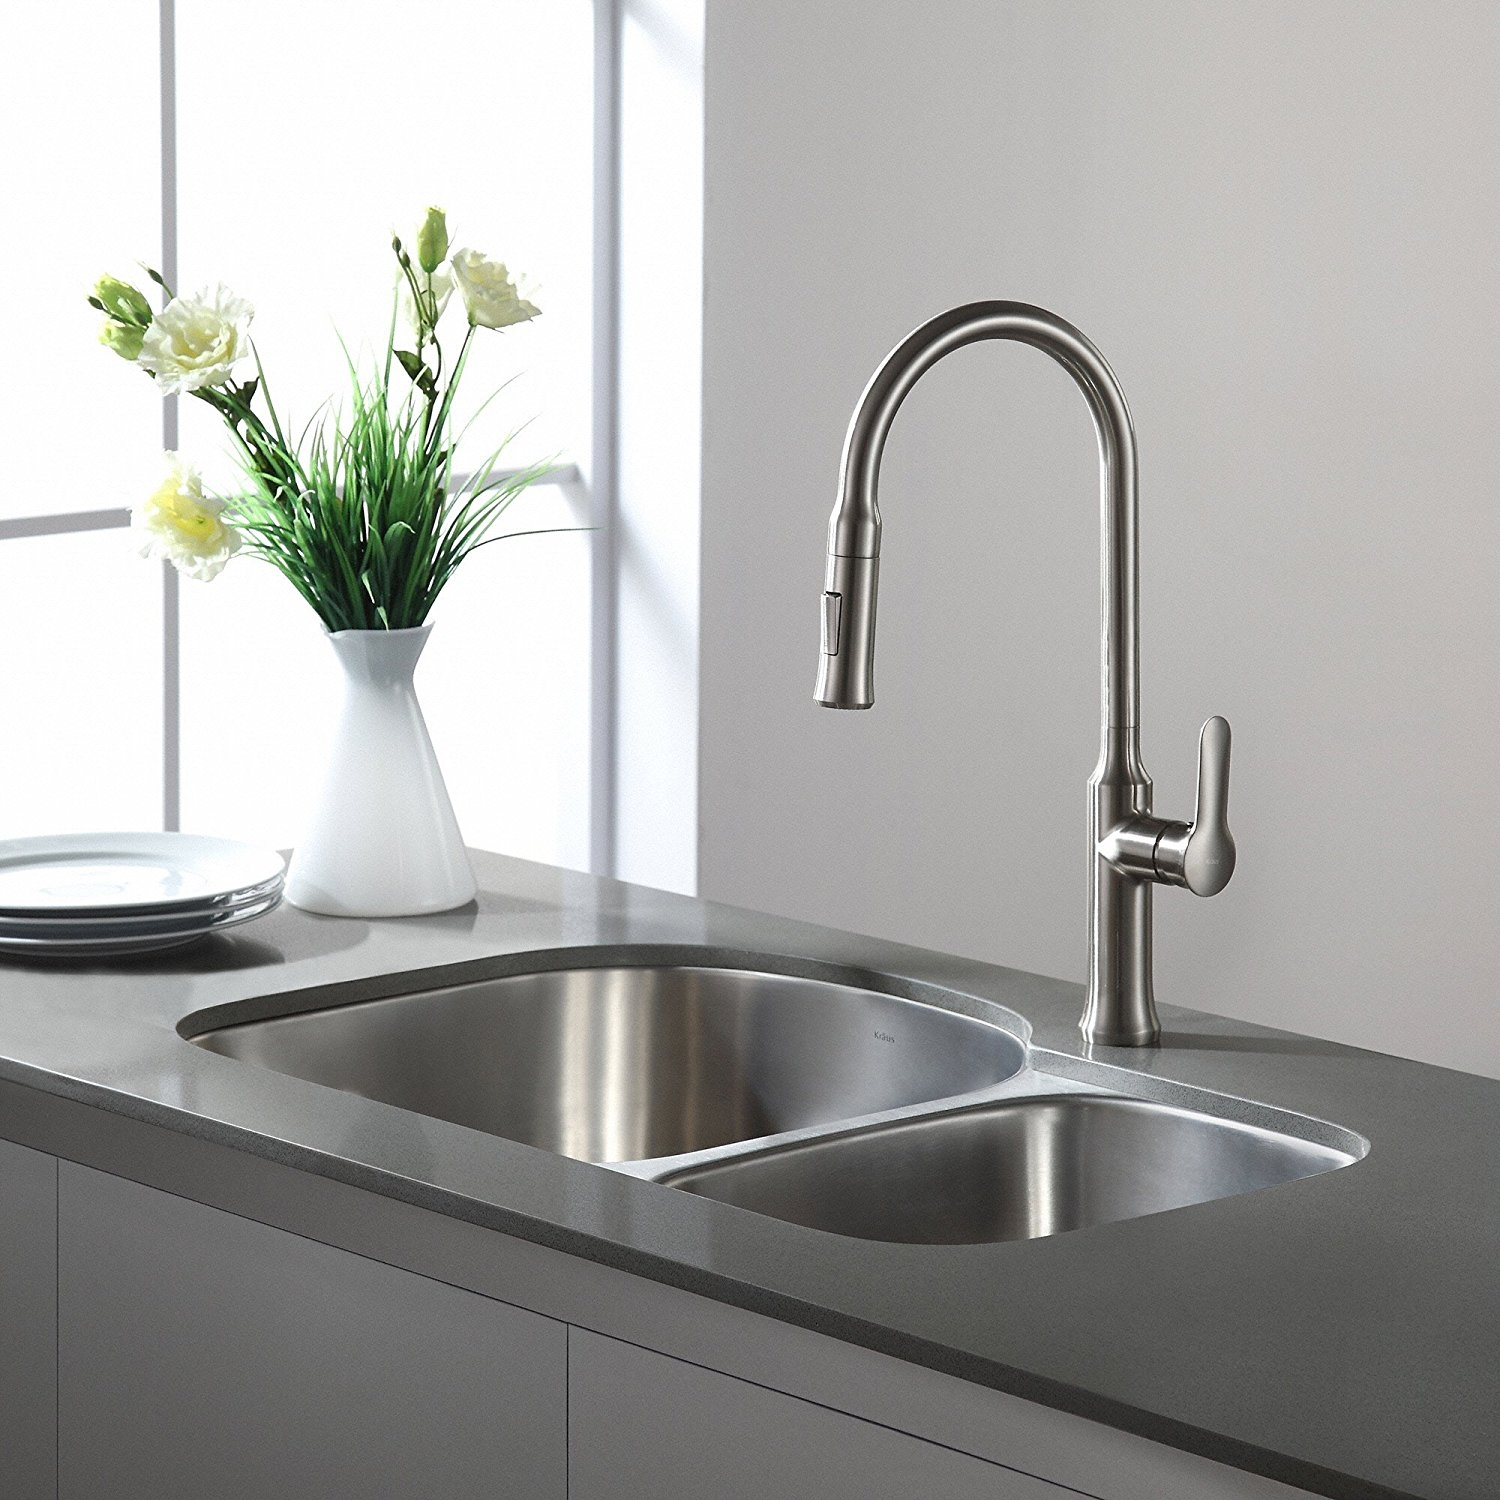 Ideas, kitchen kitchen faucet with sprayer costco kitchen faucets throughout sizing 1500 x 1500  .